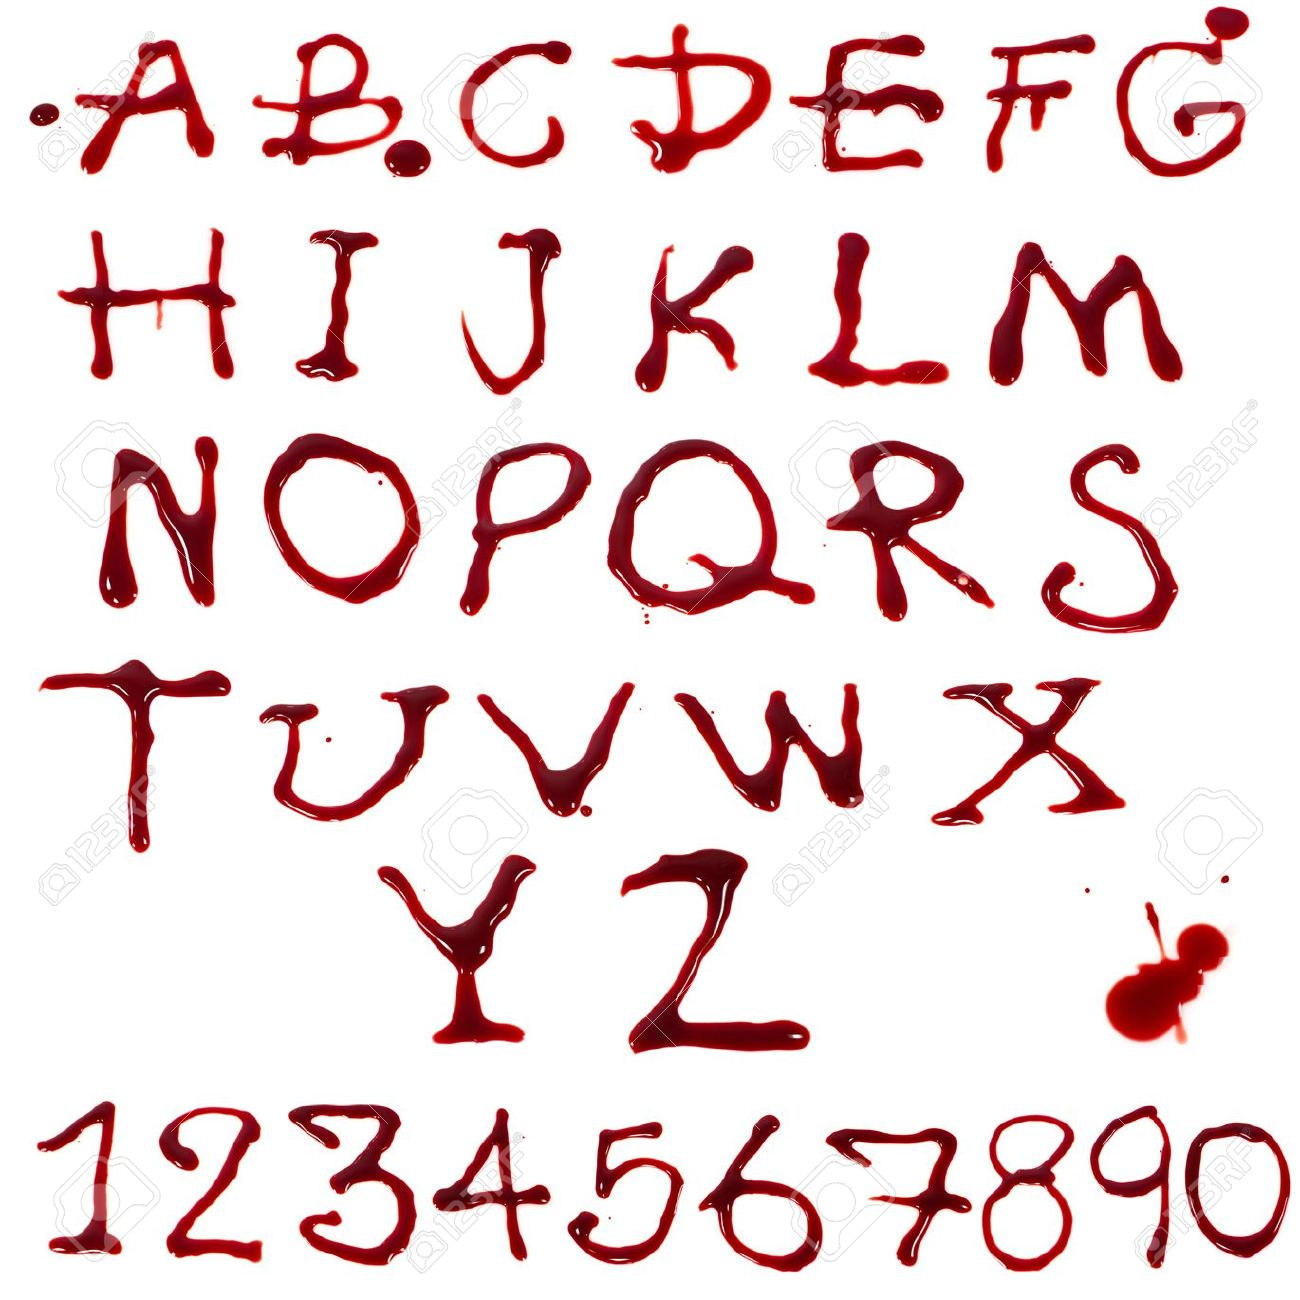 Letters A Z And 1 10 Dripping With Blood On White Background Stock Photo